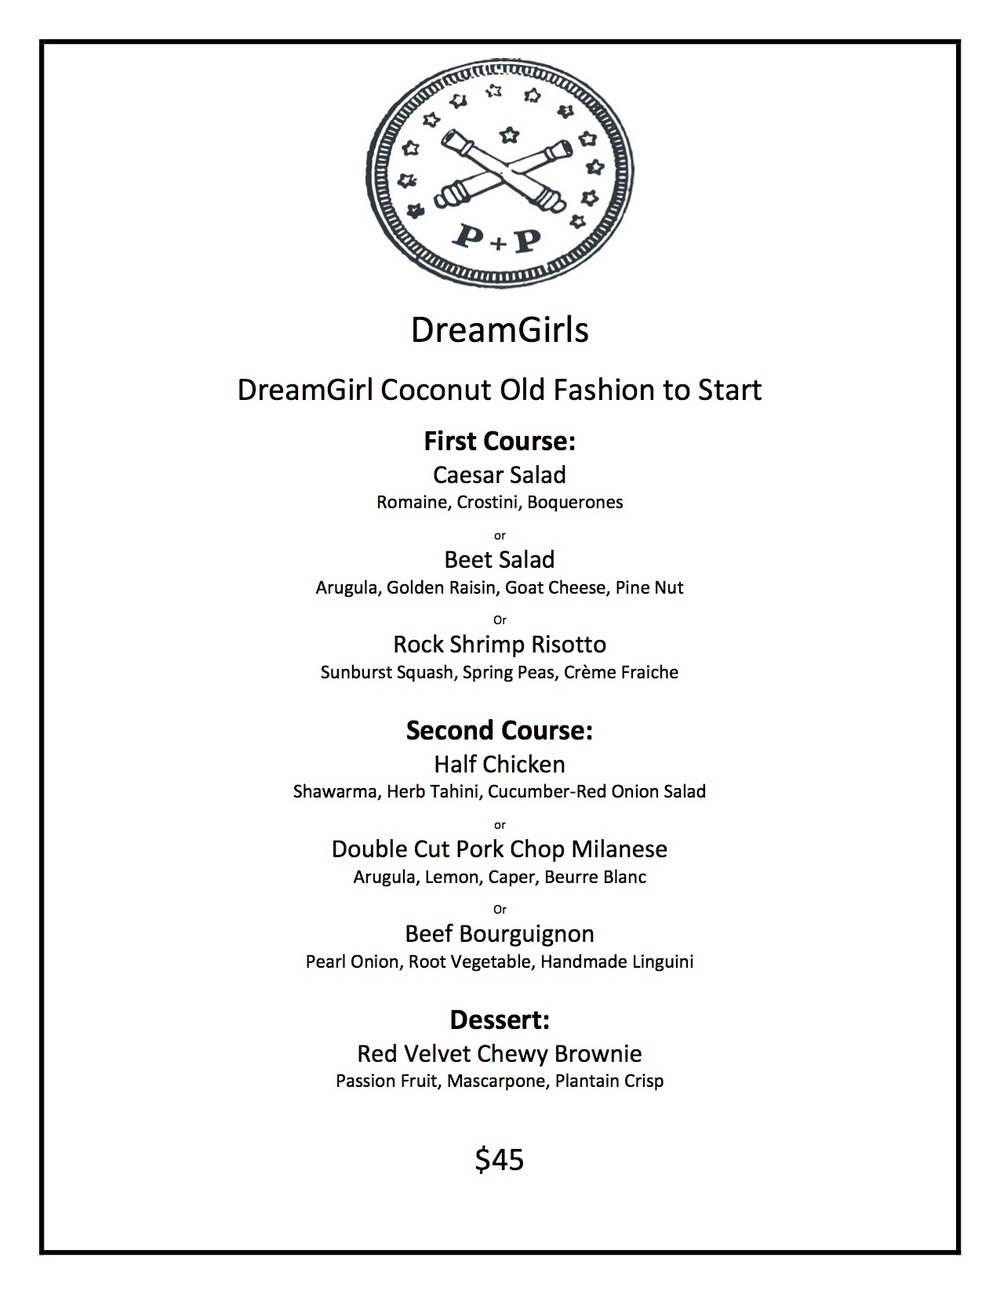 Dream girls Pre-Theater Prix Fixe Menu